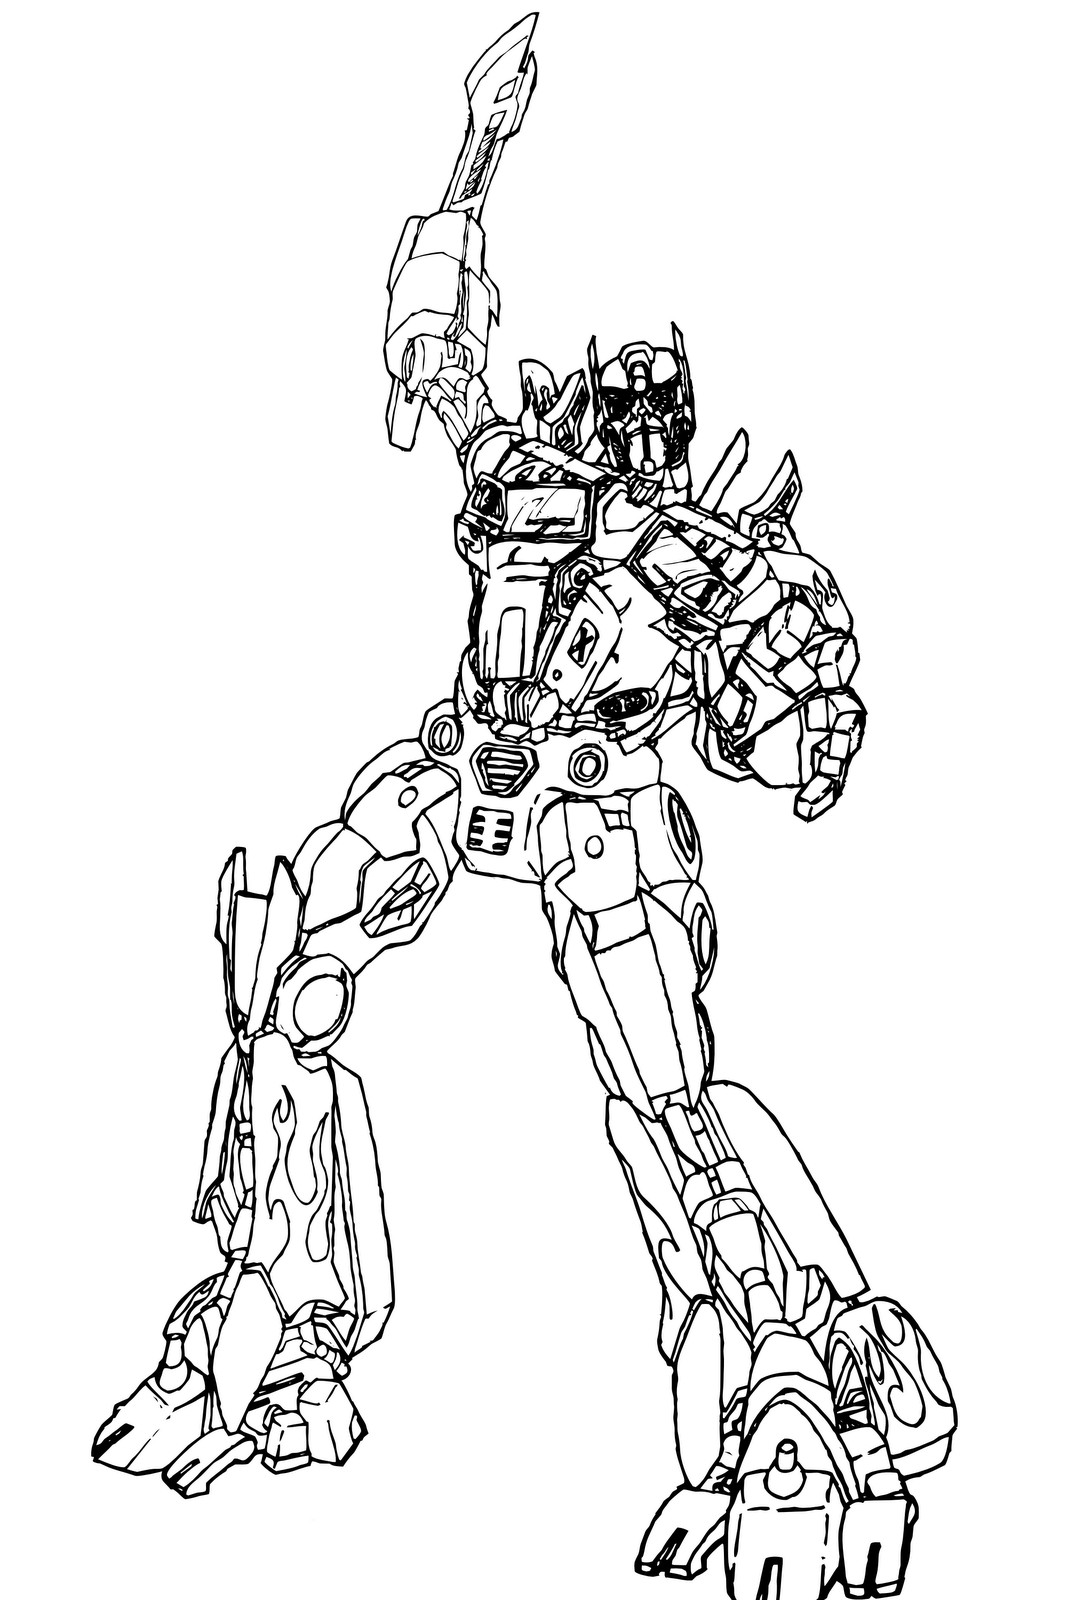 Transformers Prime Coloring Pages at GetColorings